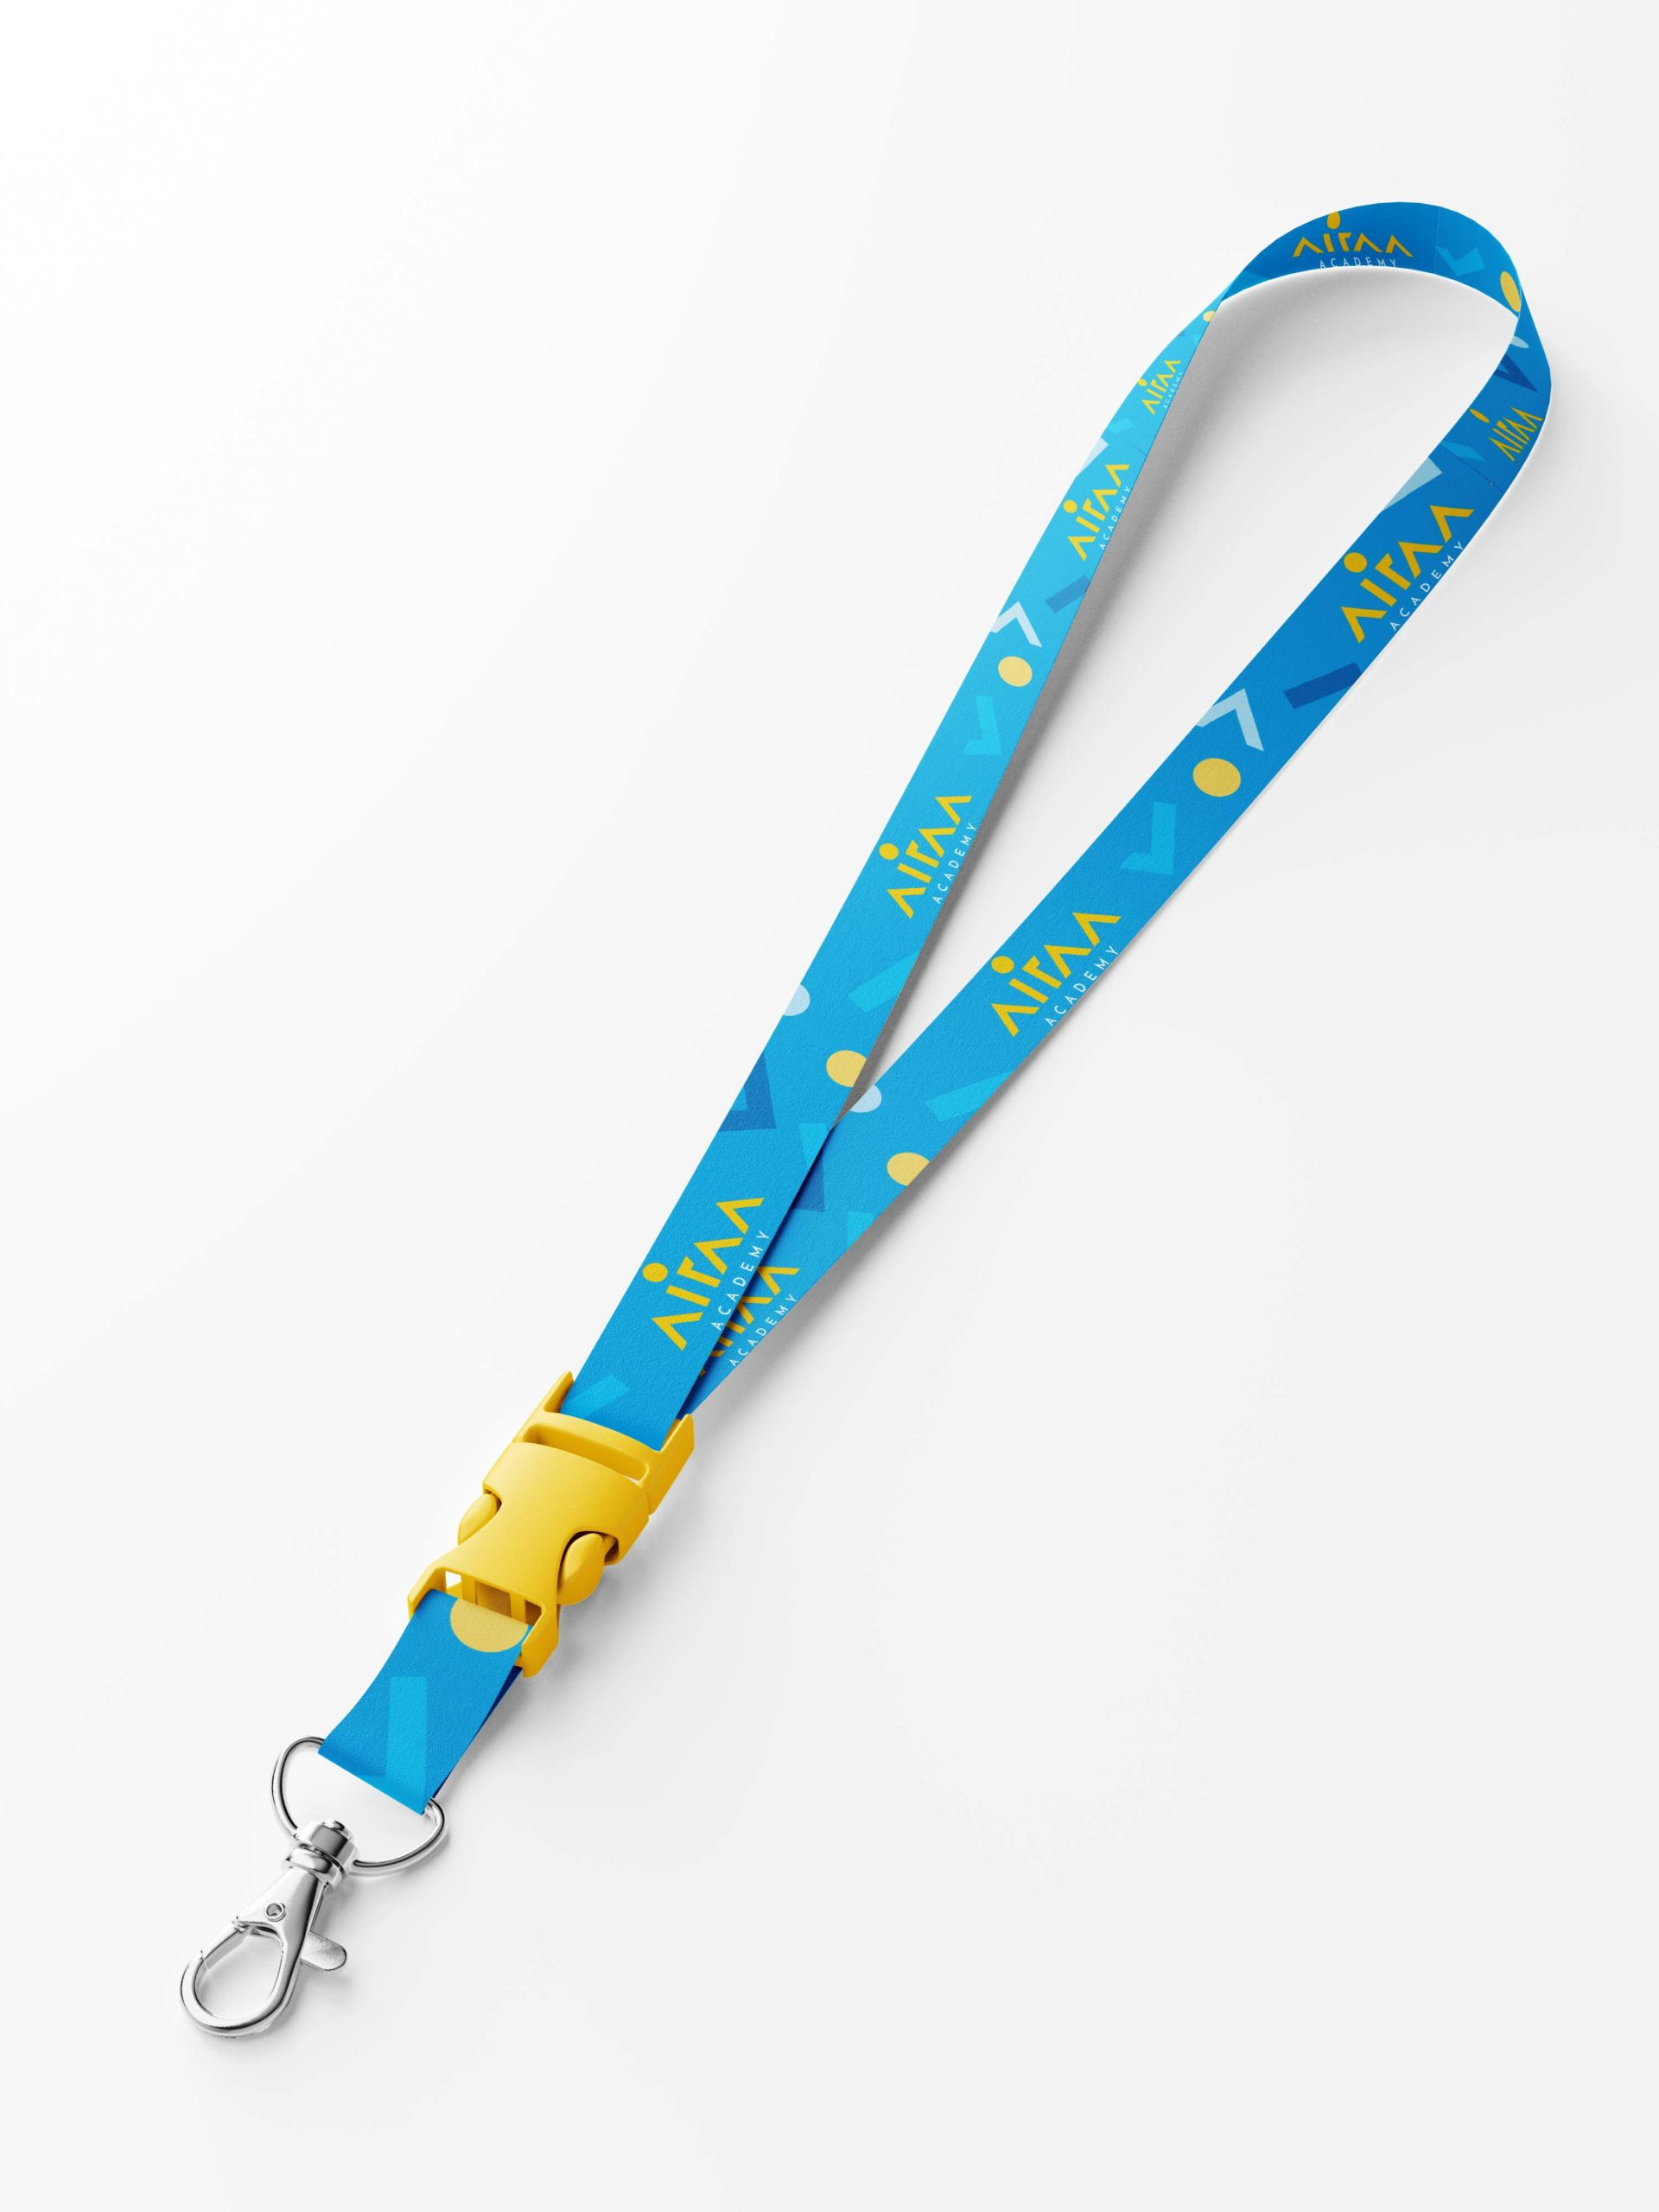 Education Airaa Rezonant Design Lanyard scaled